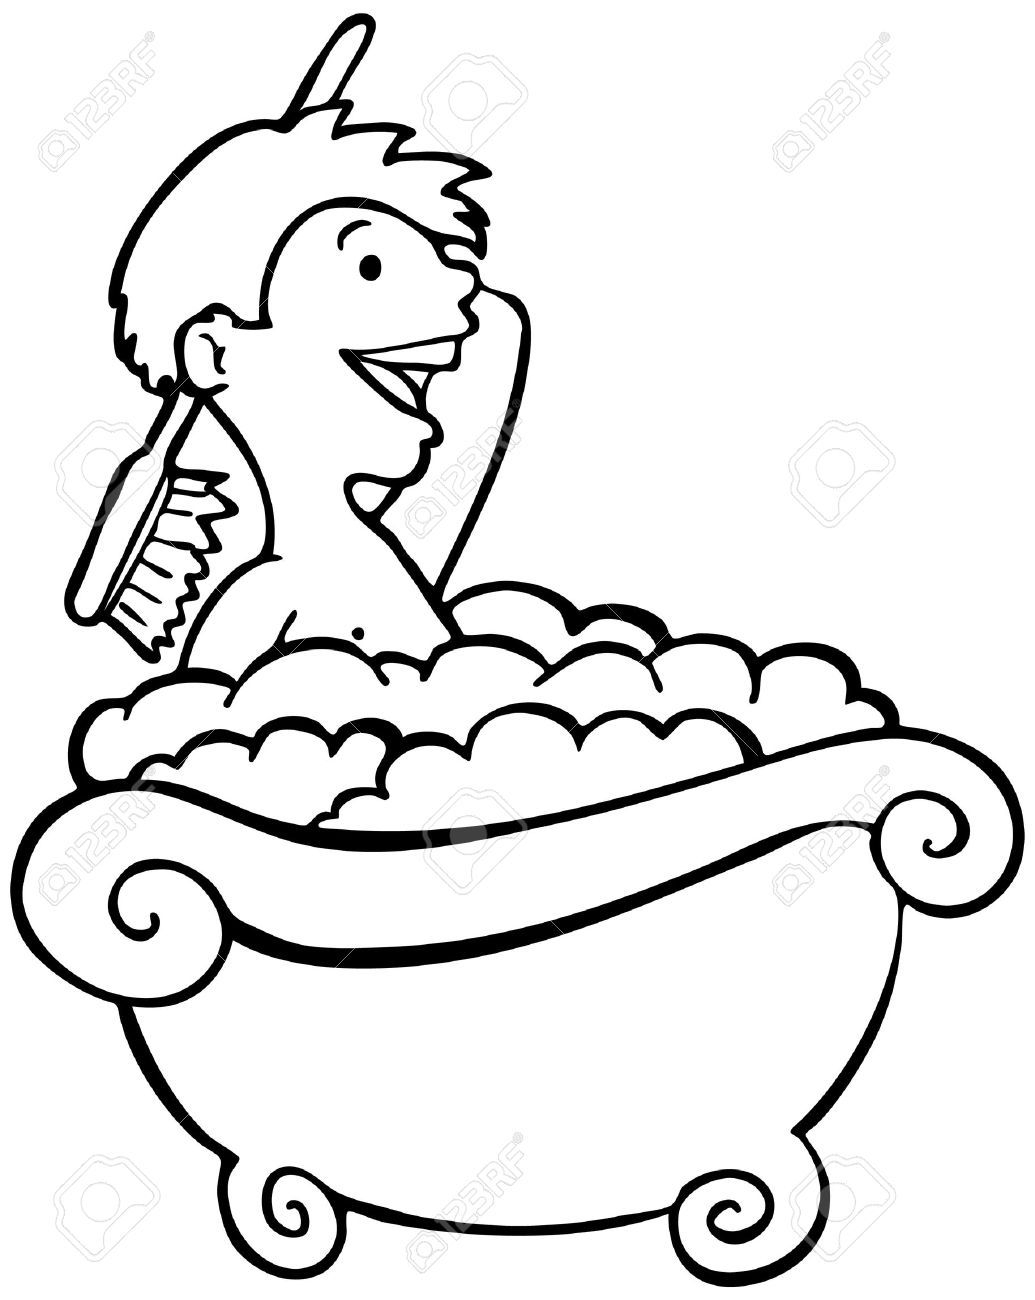 Line Art Quizlet : Taking a bath clipart black and white station